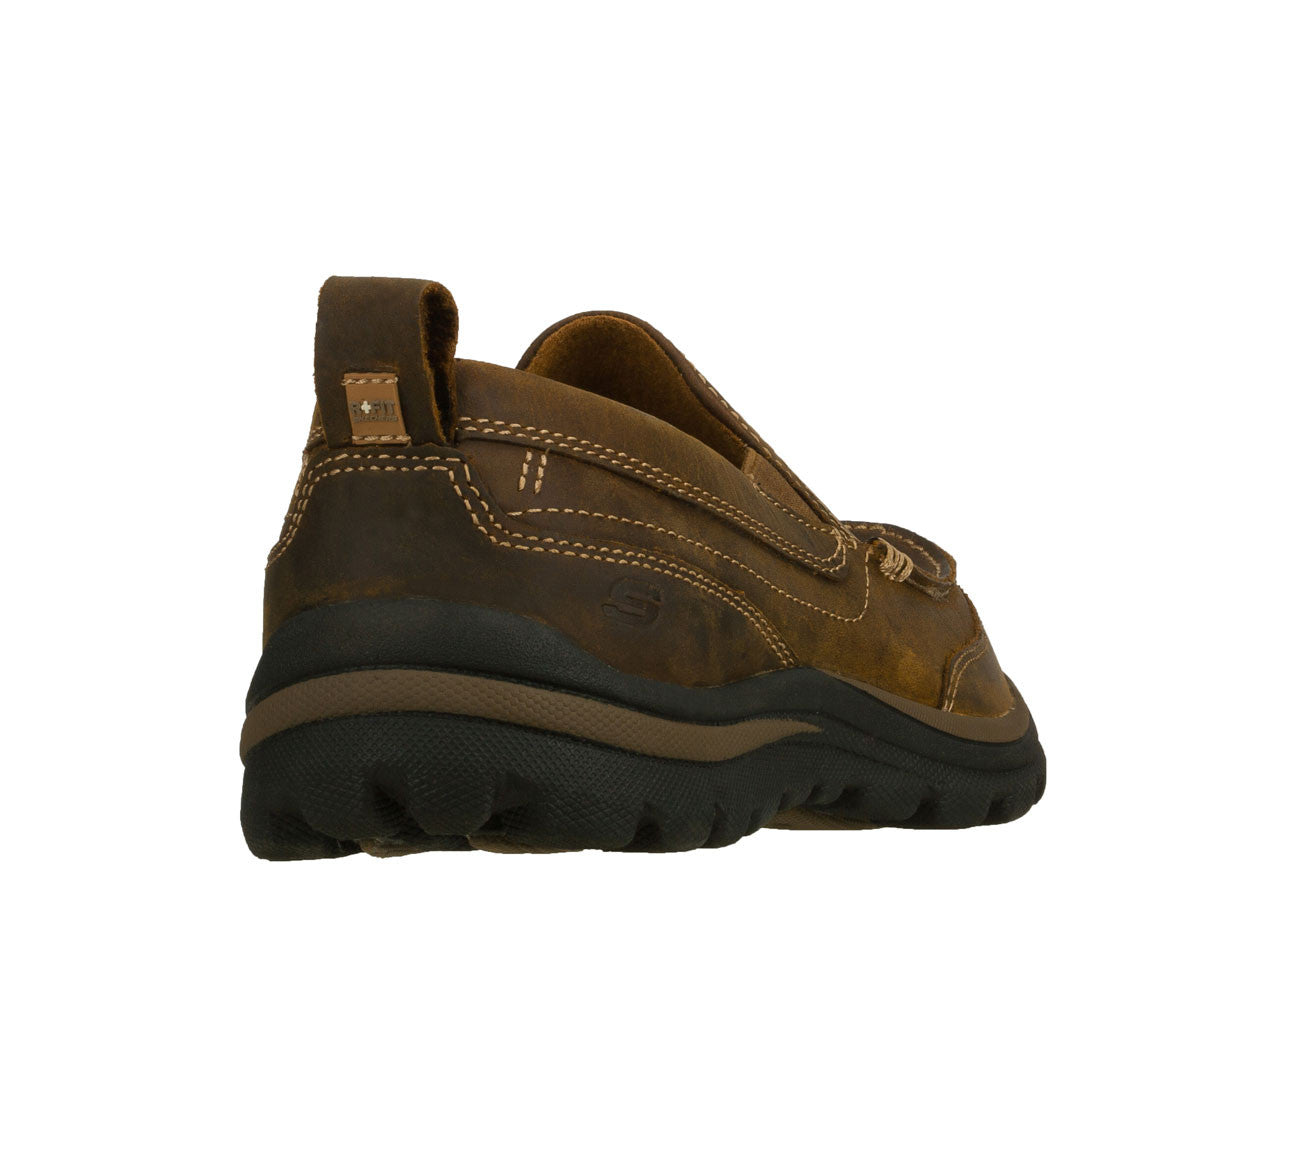 a89f8d3f303a Skechers Mens Relaxed Fit  Superior - Gains Brown – Army Navy Now